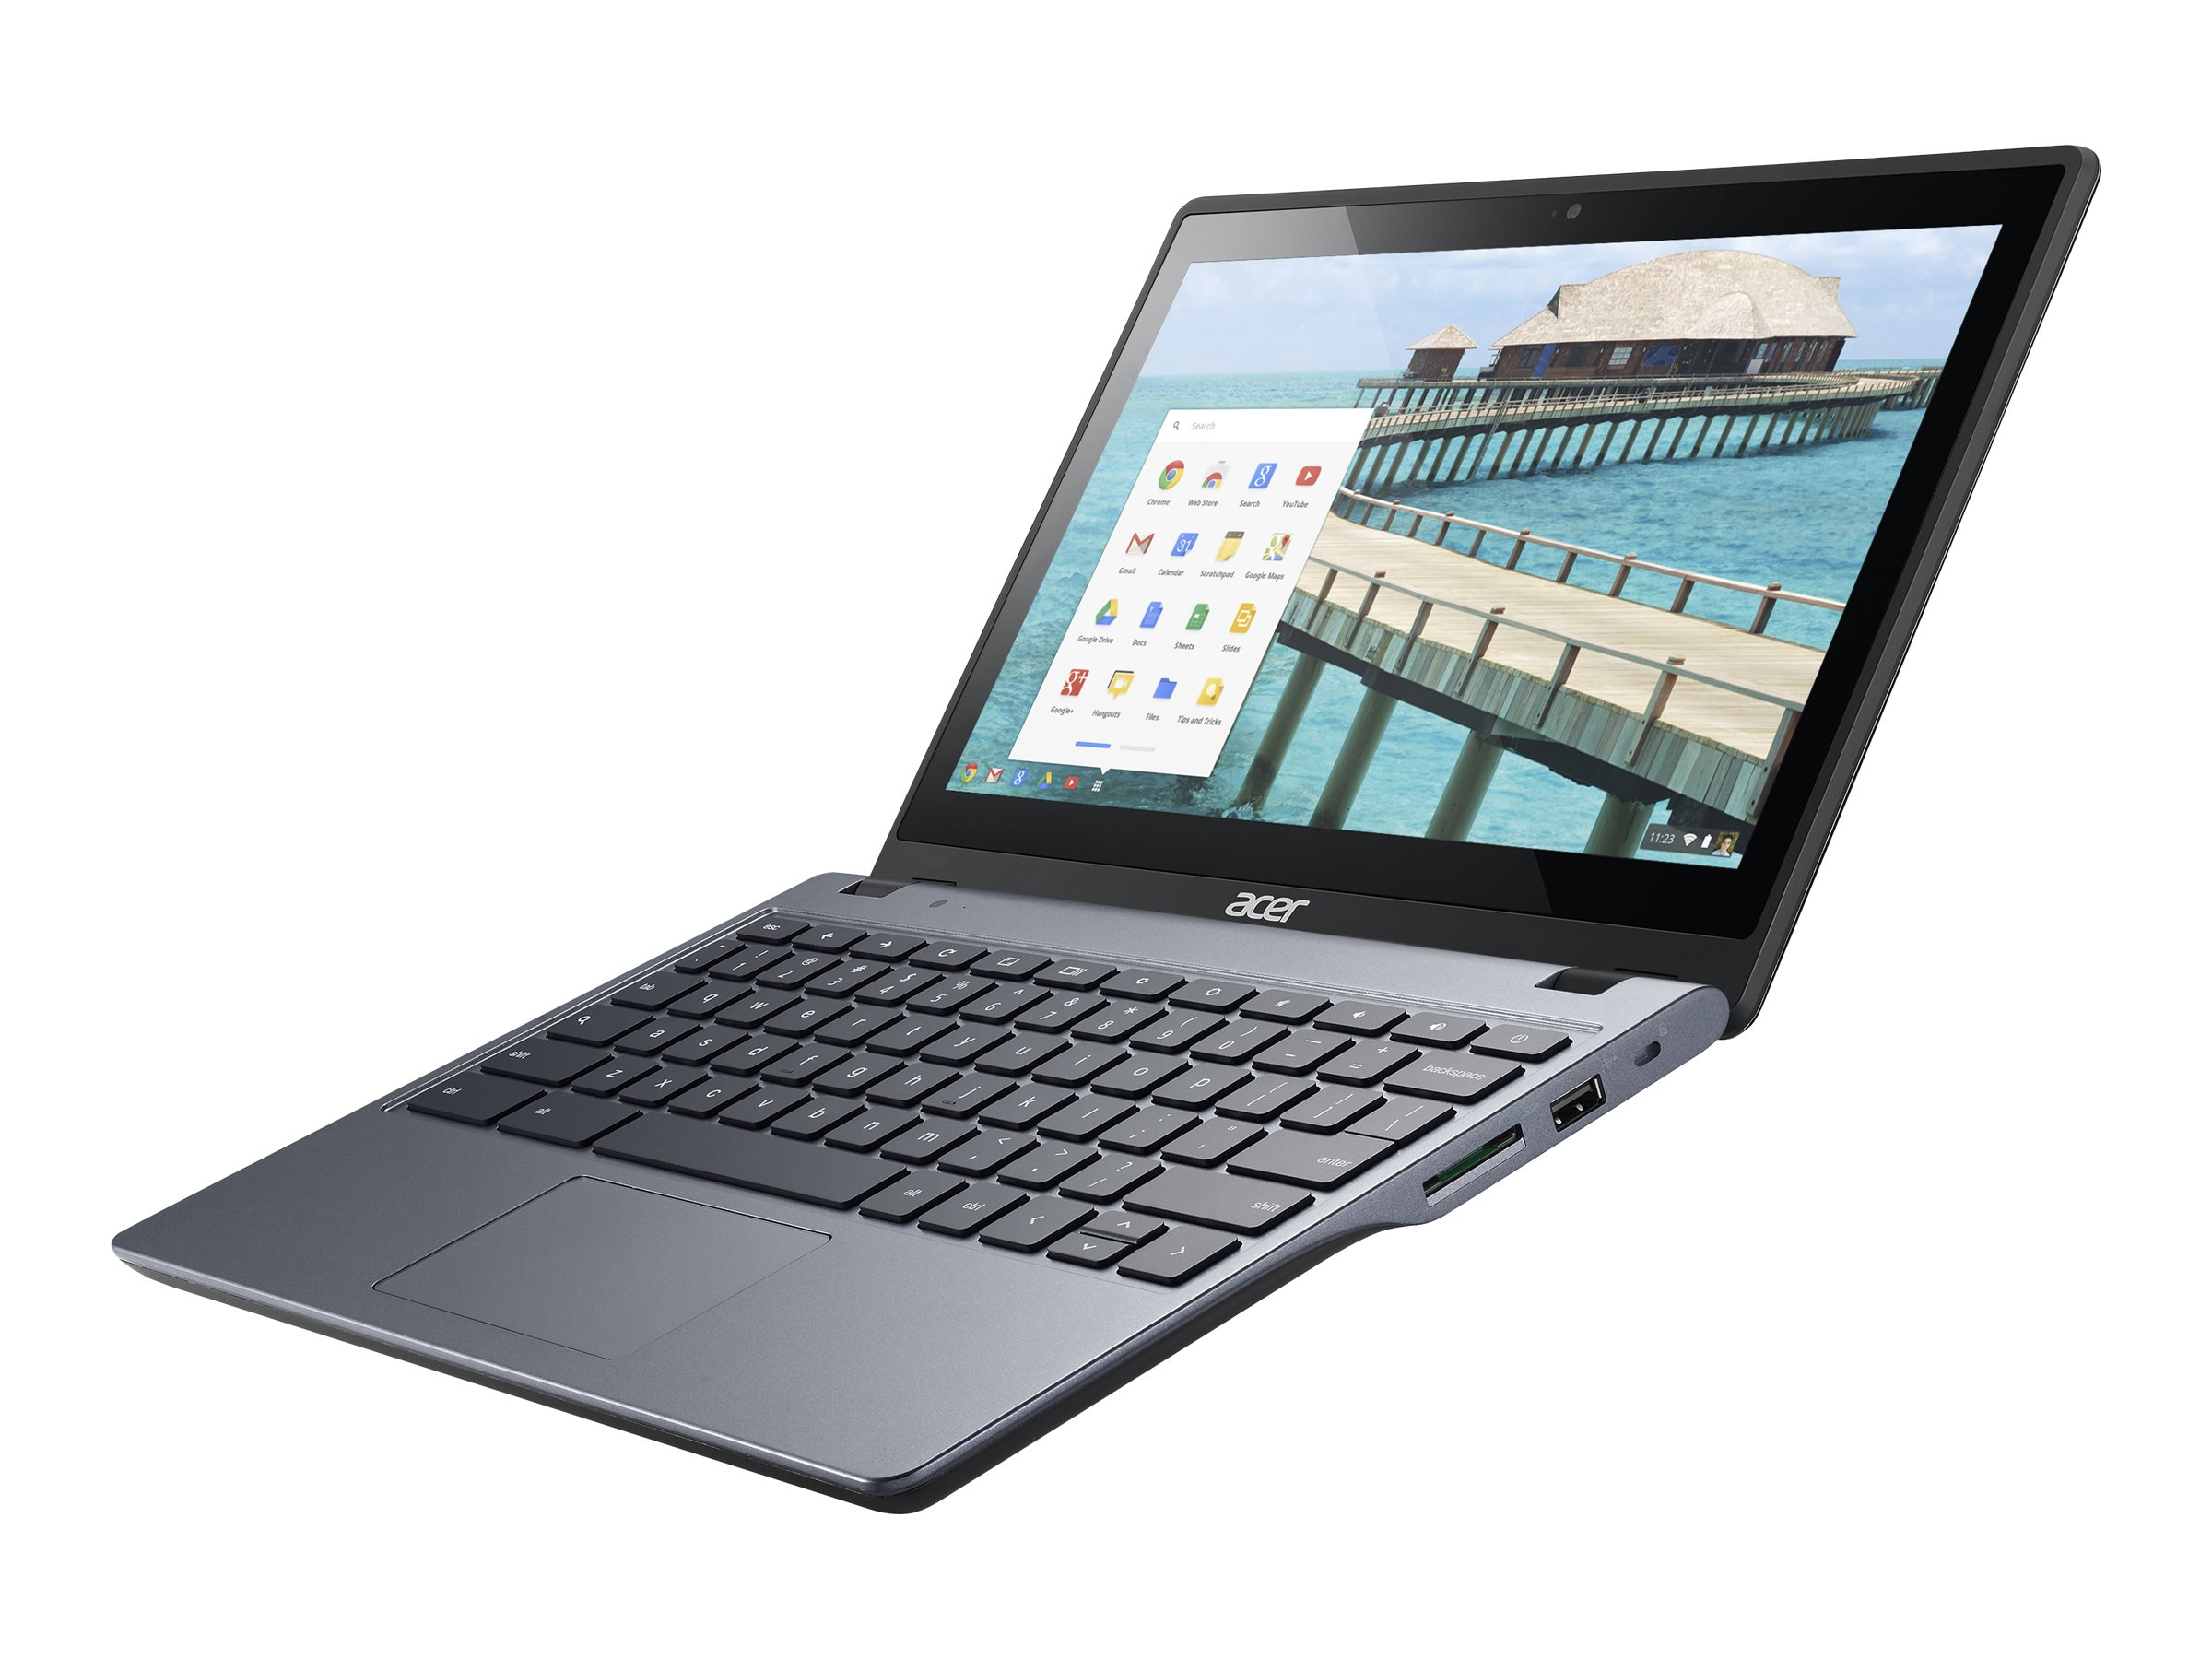 Acer Chromebook C720P-2625 1.4GHz Celeron 11.6in display, NX.MJAAA.004, 16557655, Notebooks